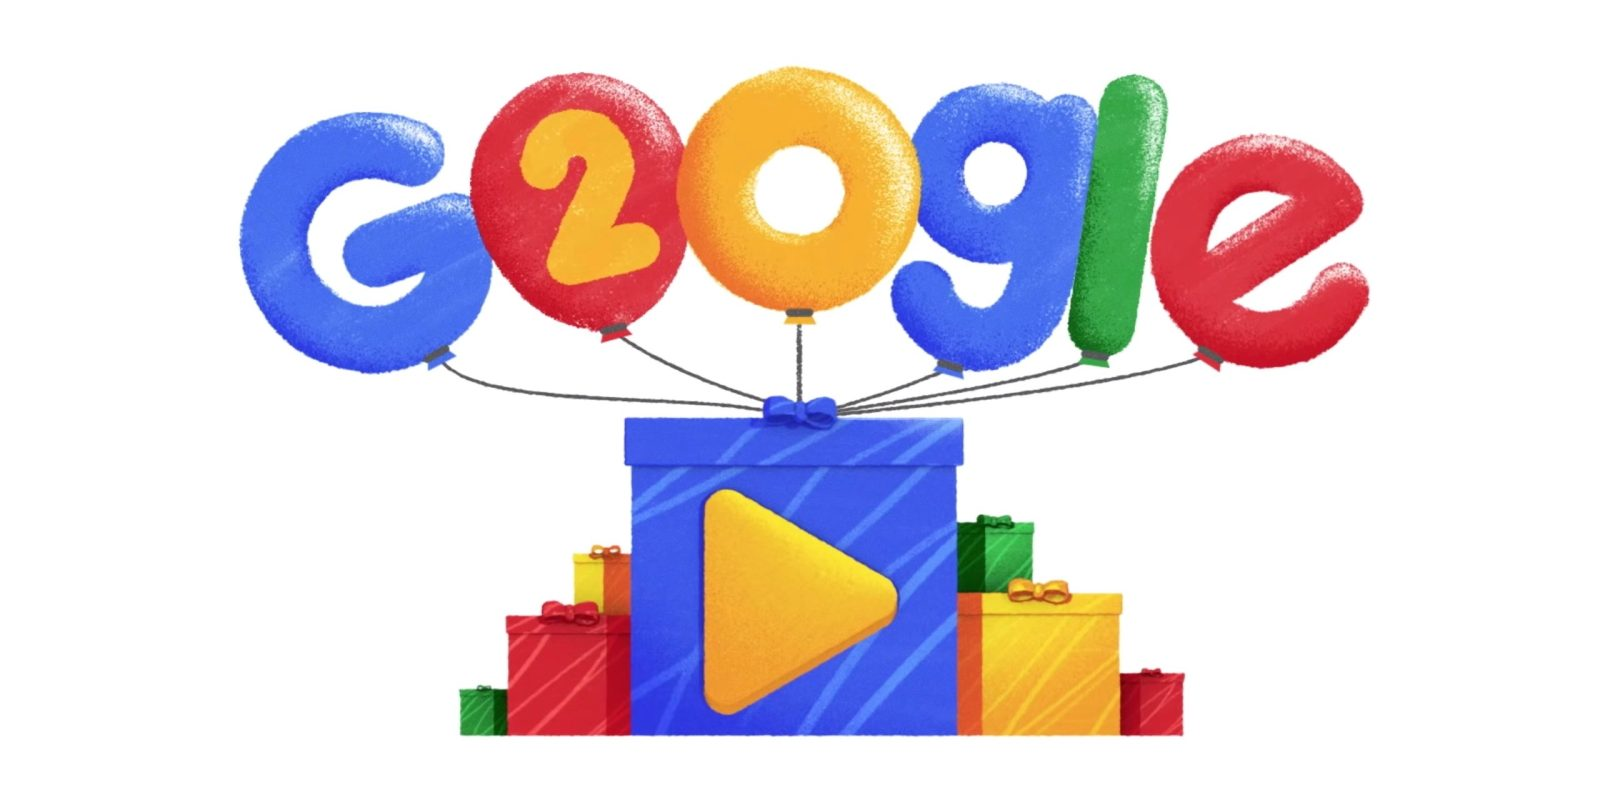 google s birthday doodle celebrates 20 years of popular searches